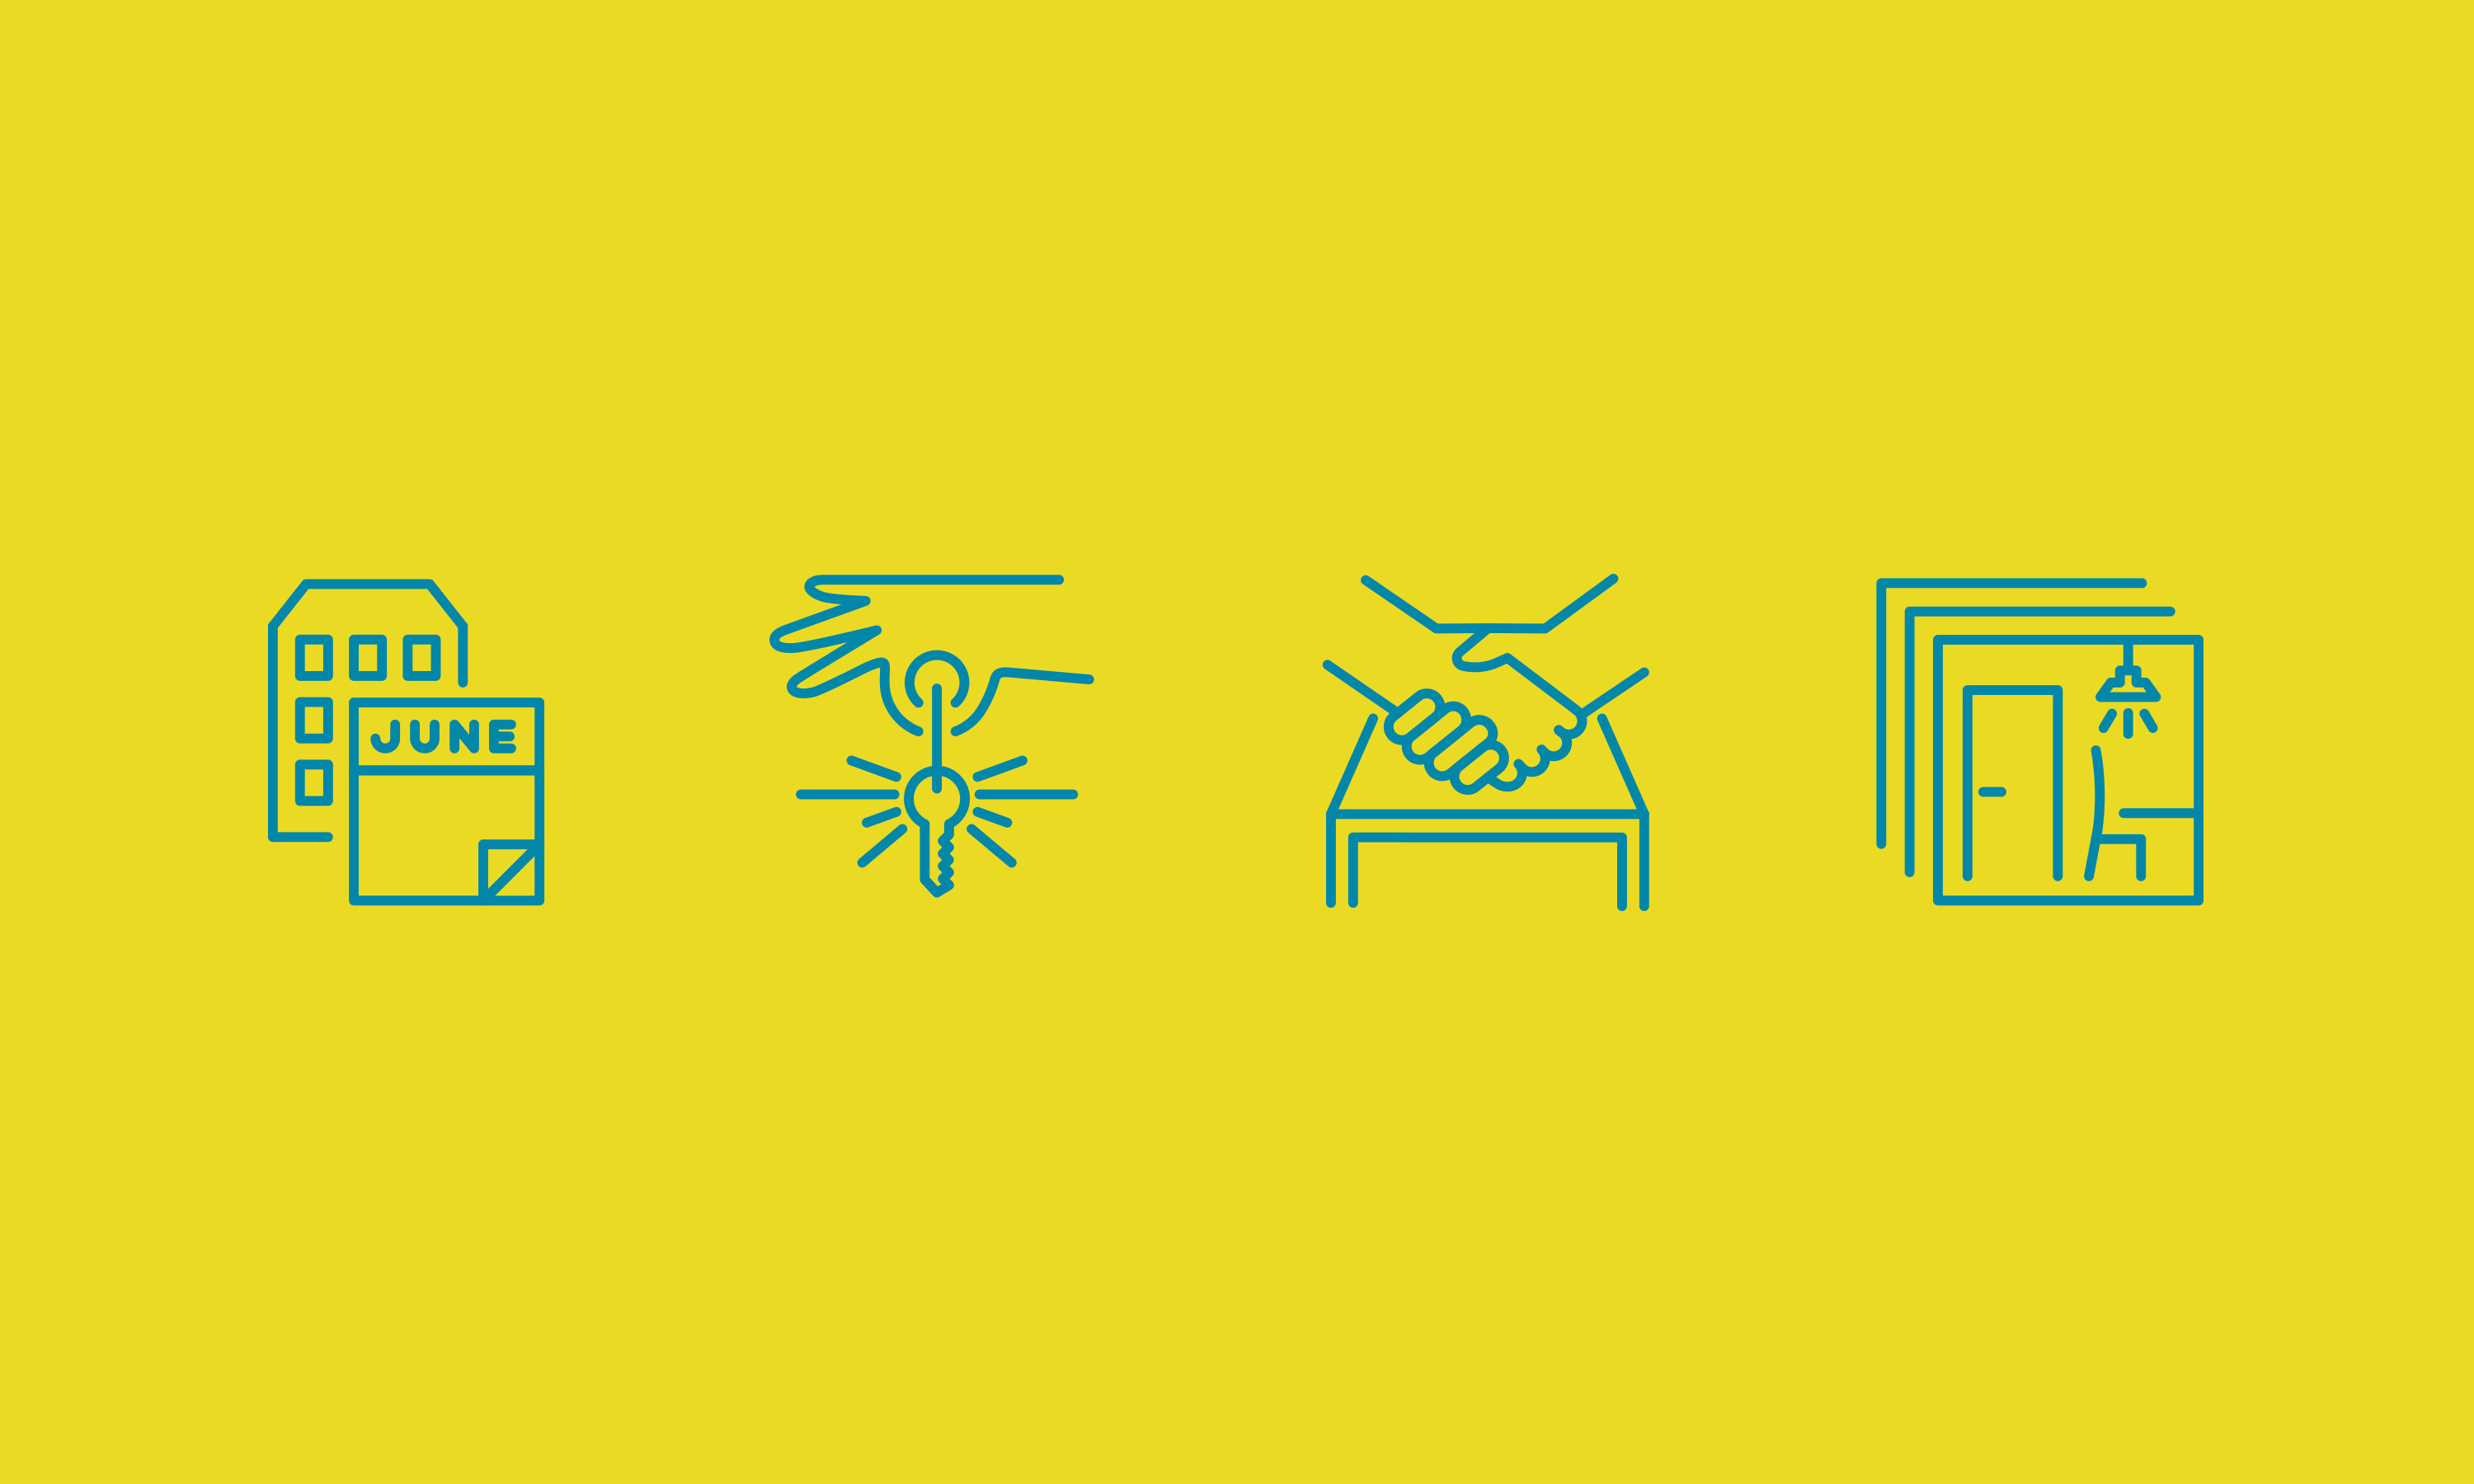 utility-house-branding-icons-monstera